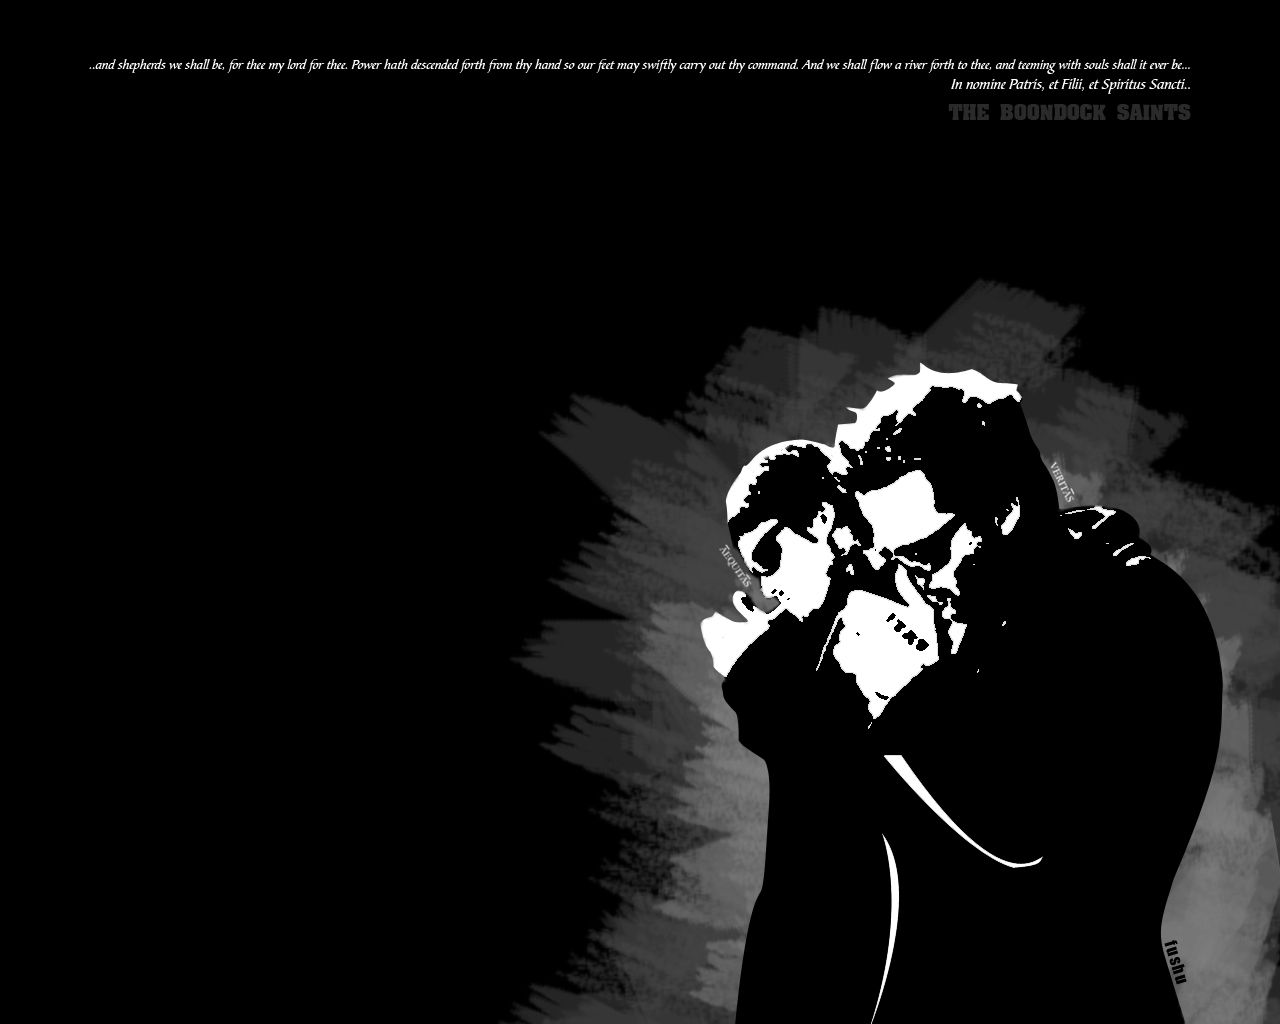 1280x1024 The Boondock Saints Wallpaper and Background Image | 1280x1024 | ID ...